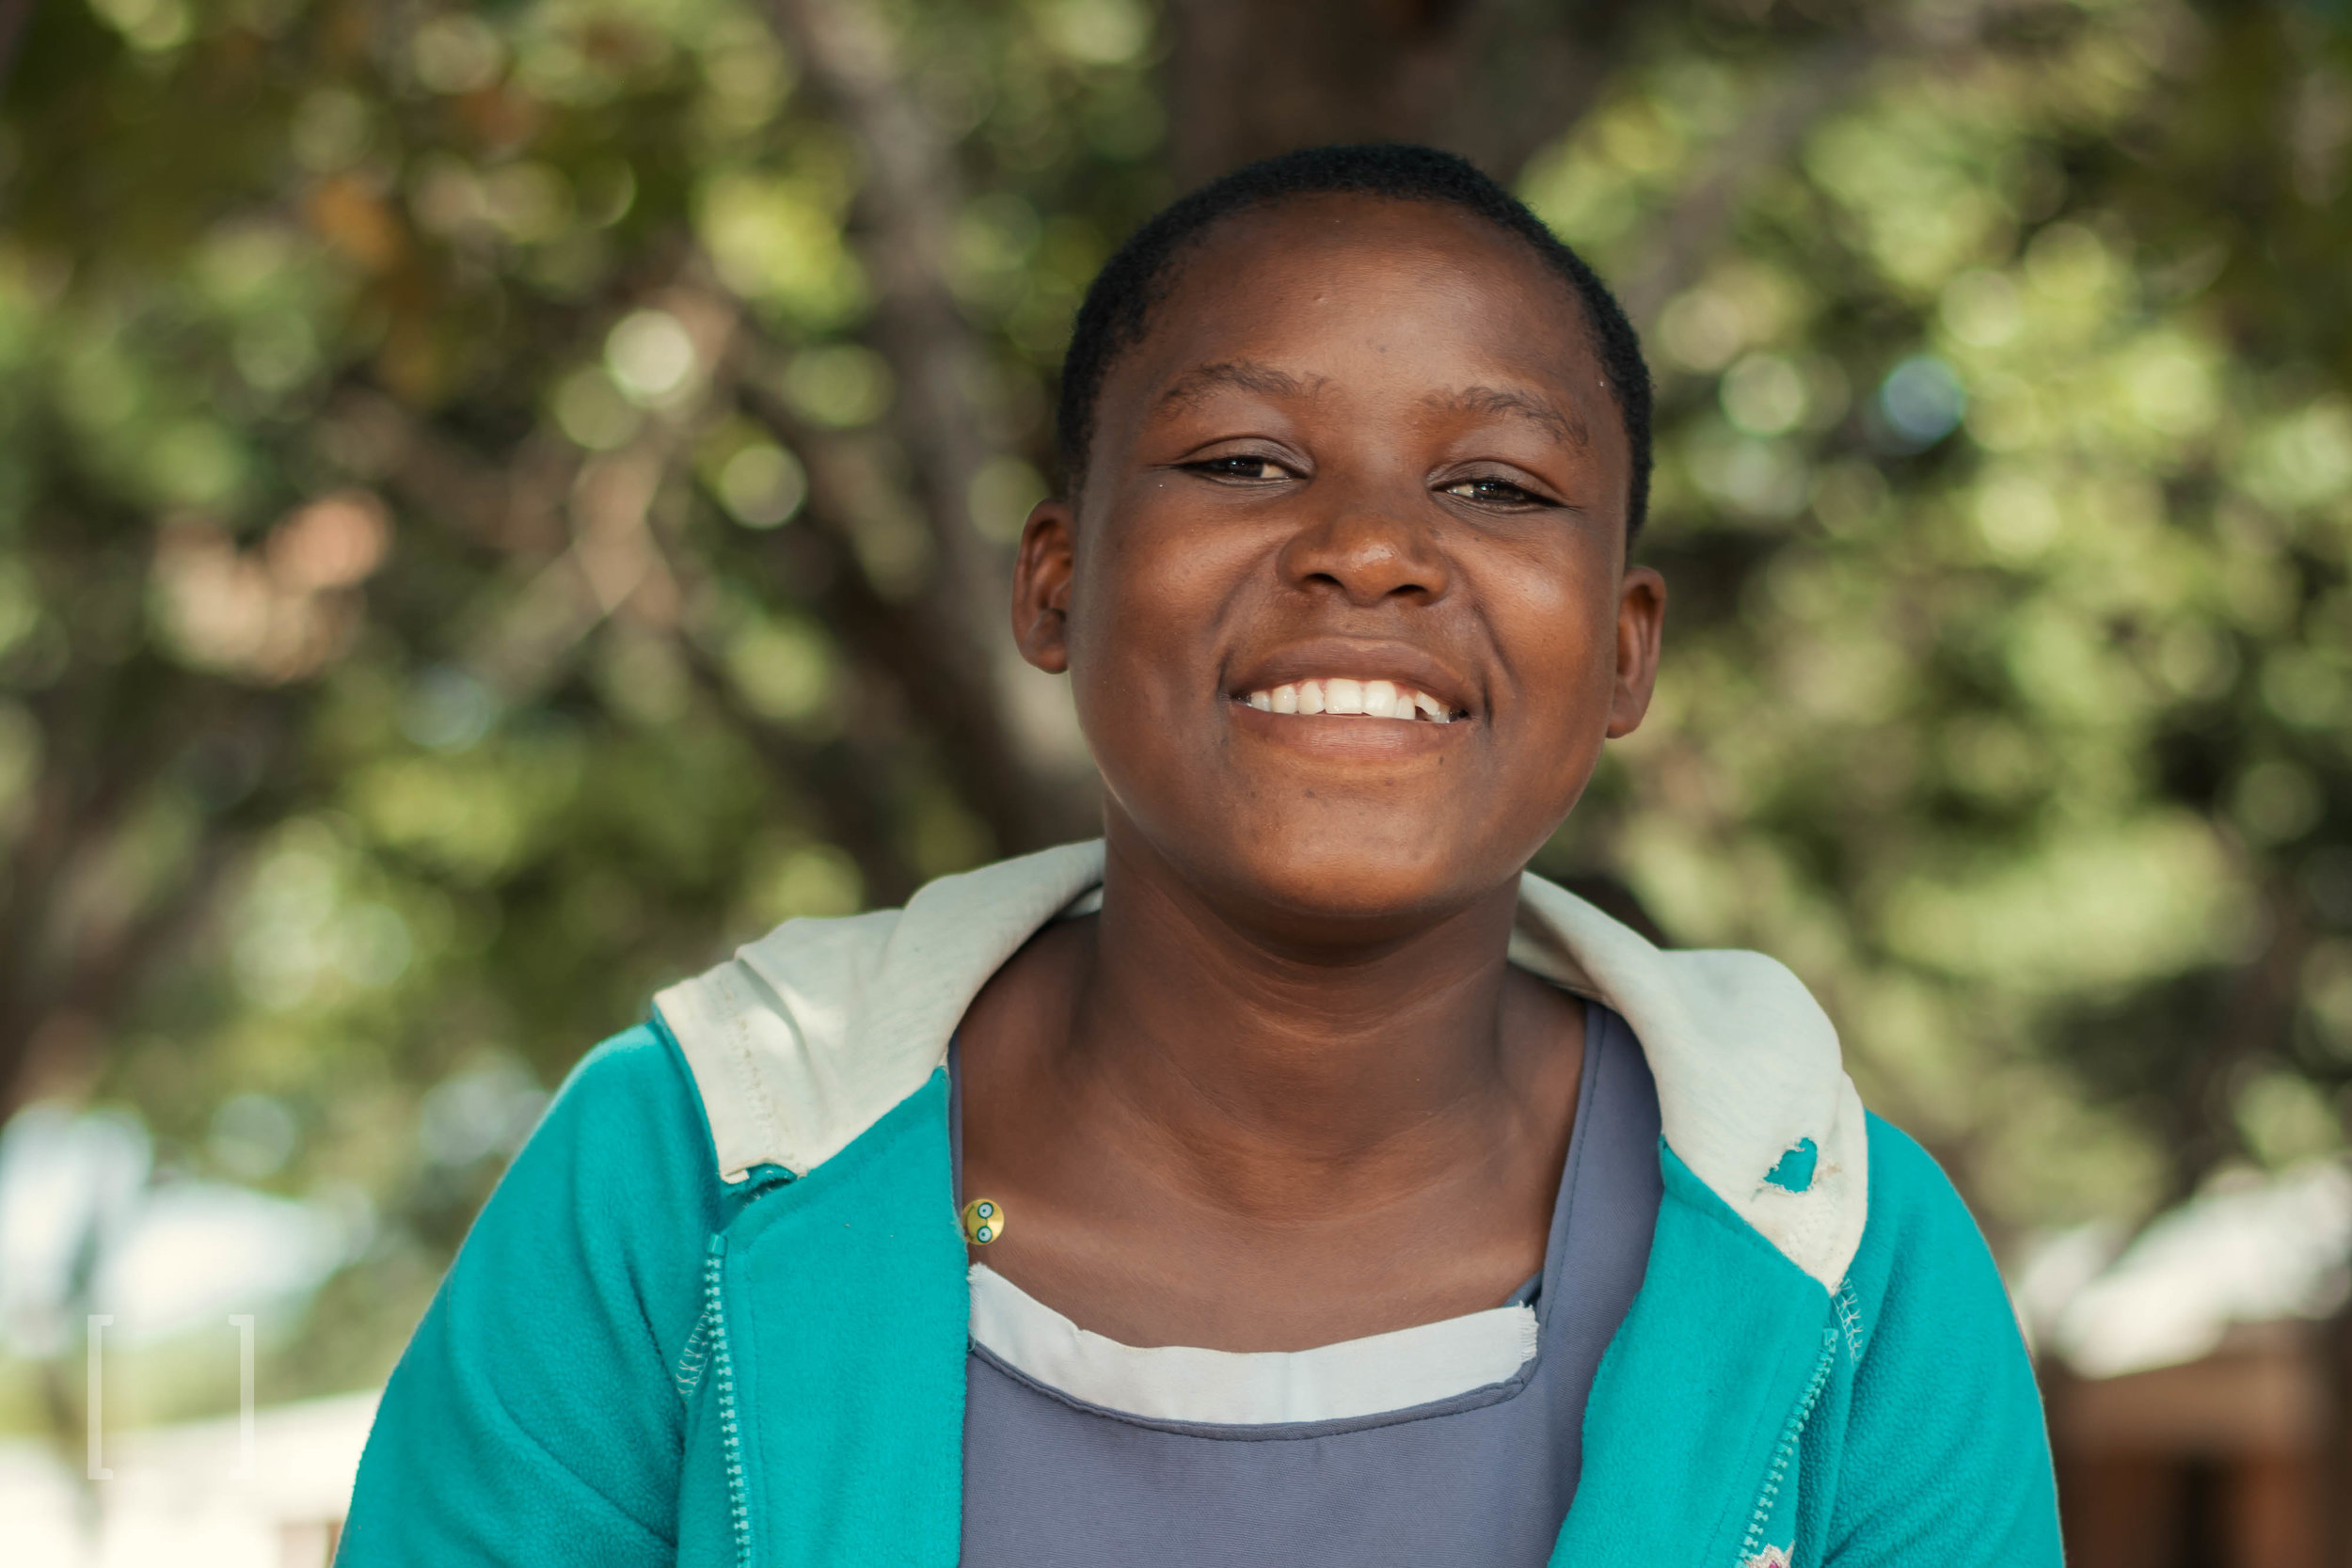 Janet - Janet is content living at the orphanage where she can eat, play with lots of friends and go to school. She wishes to be a lawyer. Be Janet's advocate!